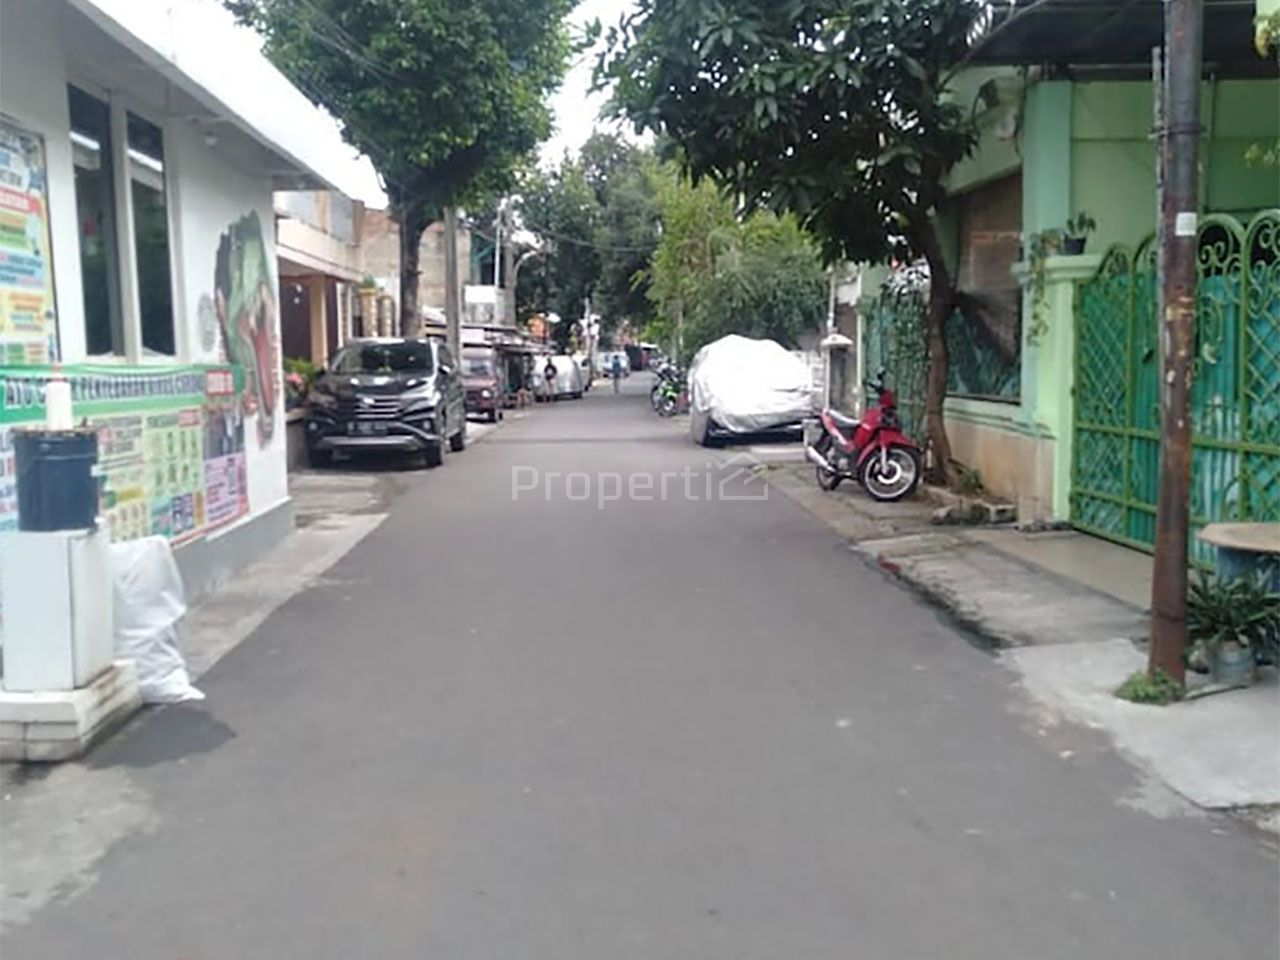 New Boarding House at Tebet, Tebet